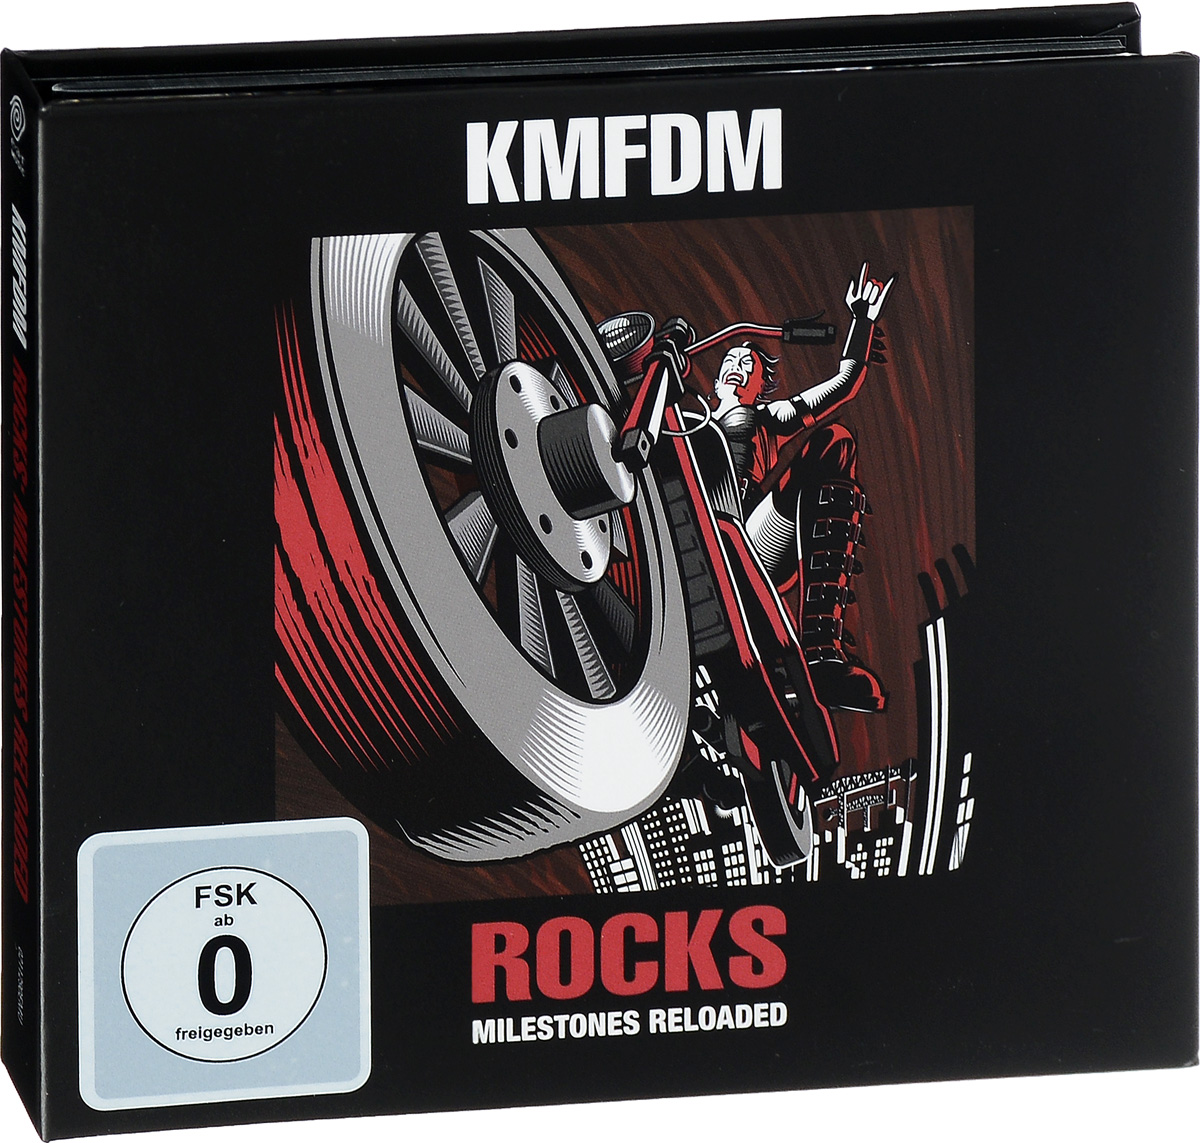 KMFDM KMFDM. Rocks. Milestones Reloaded (CD + DVD) цена